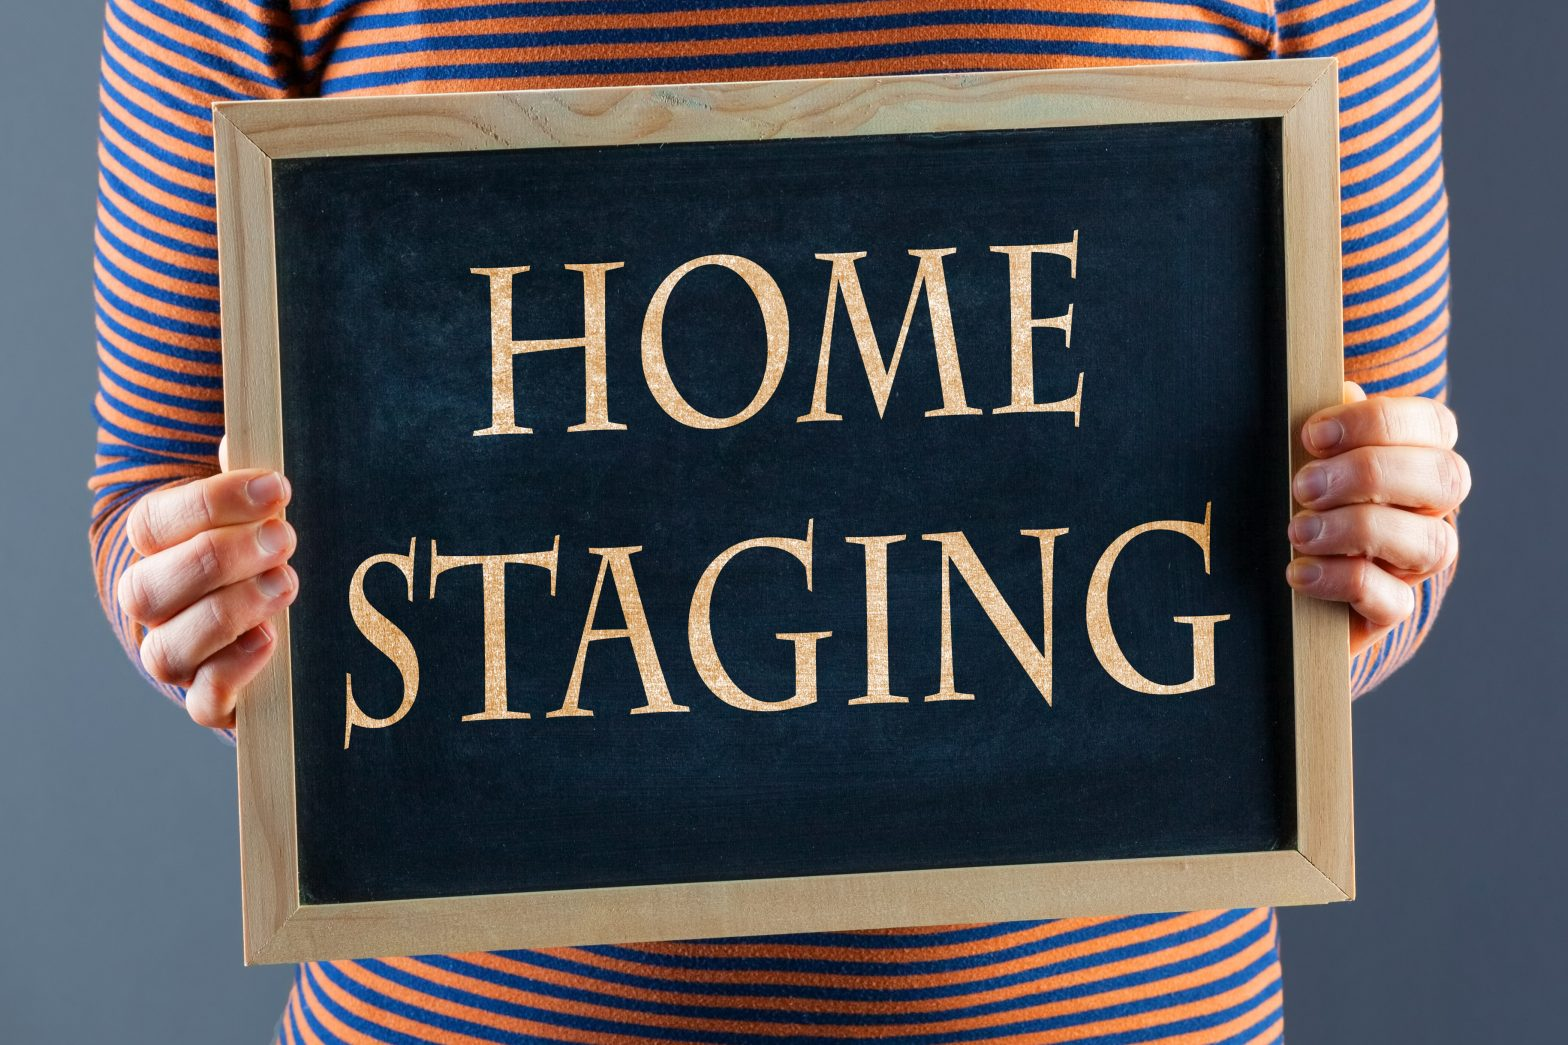 5 Home staging trends for 2020